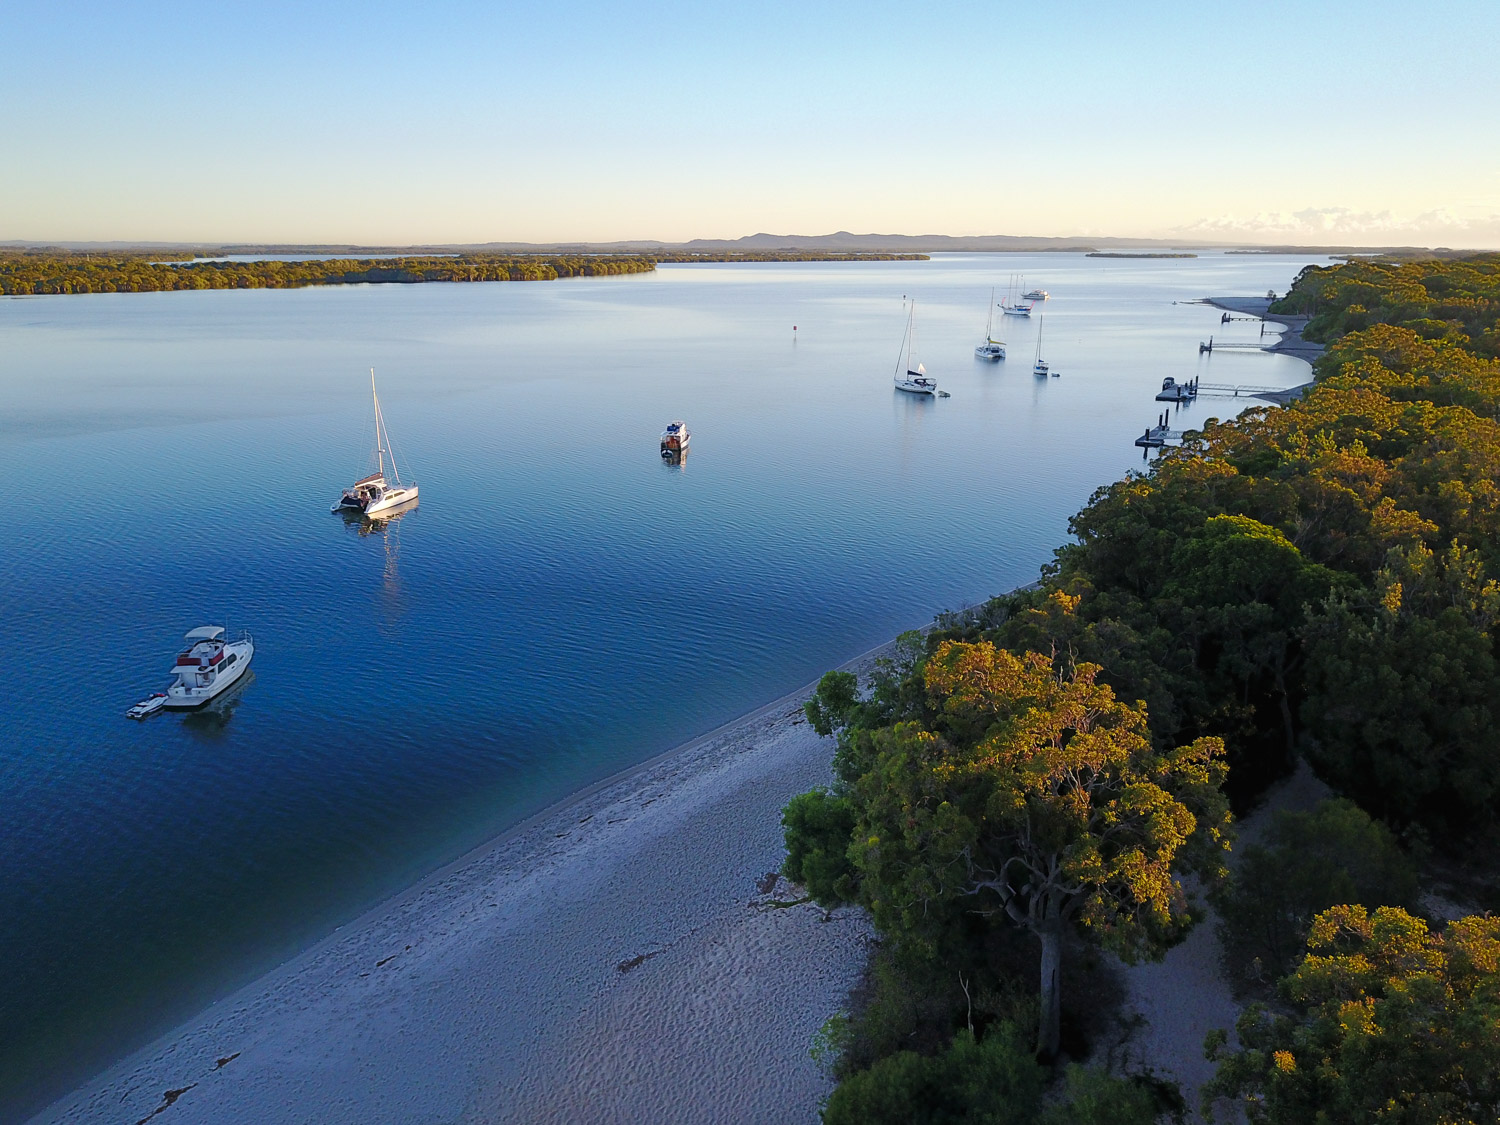 Image: Early morning view of South Stradbroke Island, Queensland. DJI Mavic.